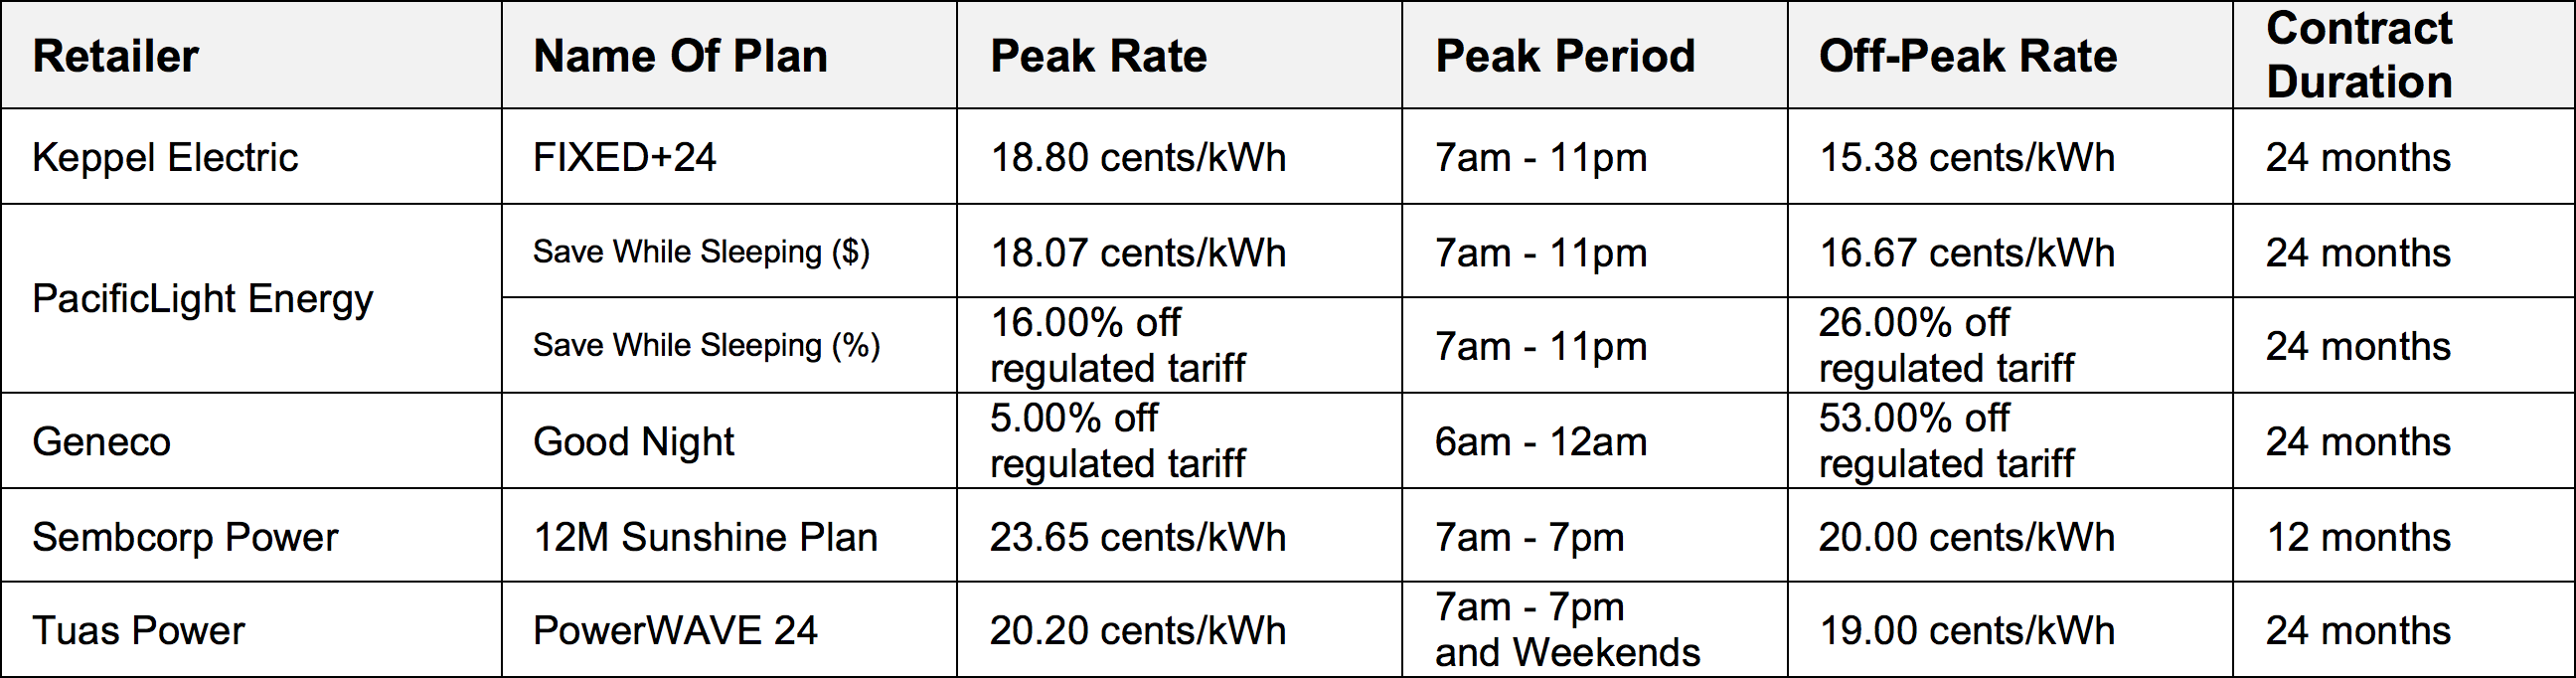 Open Electricity Market Cheatsheet How To Choose The Types Of Electrical Plans Comparing Between 6 Peak And Off Is A Little Trickier Since Not All Vendors Have Same Definition For Period Thus In Way